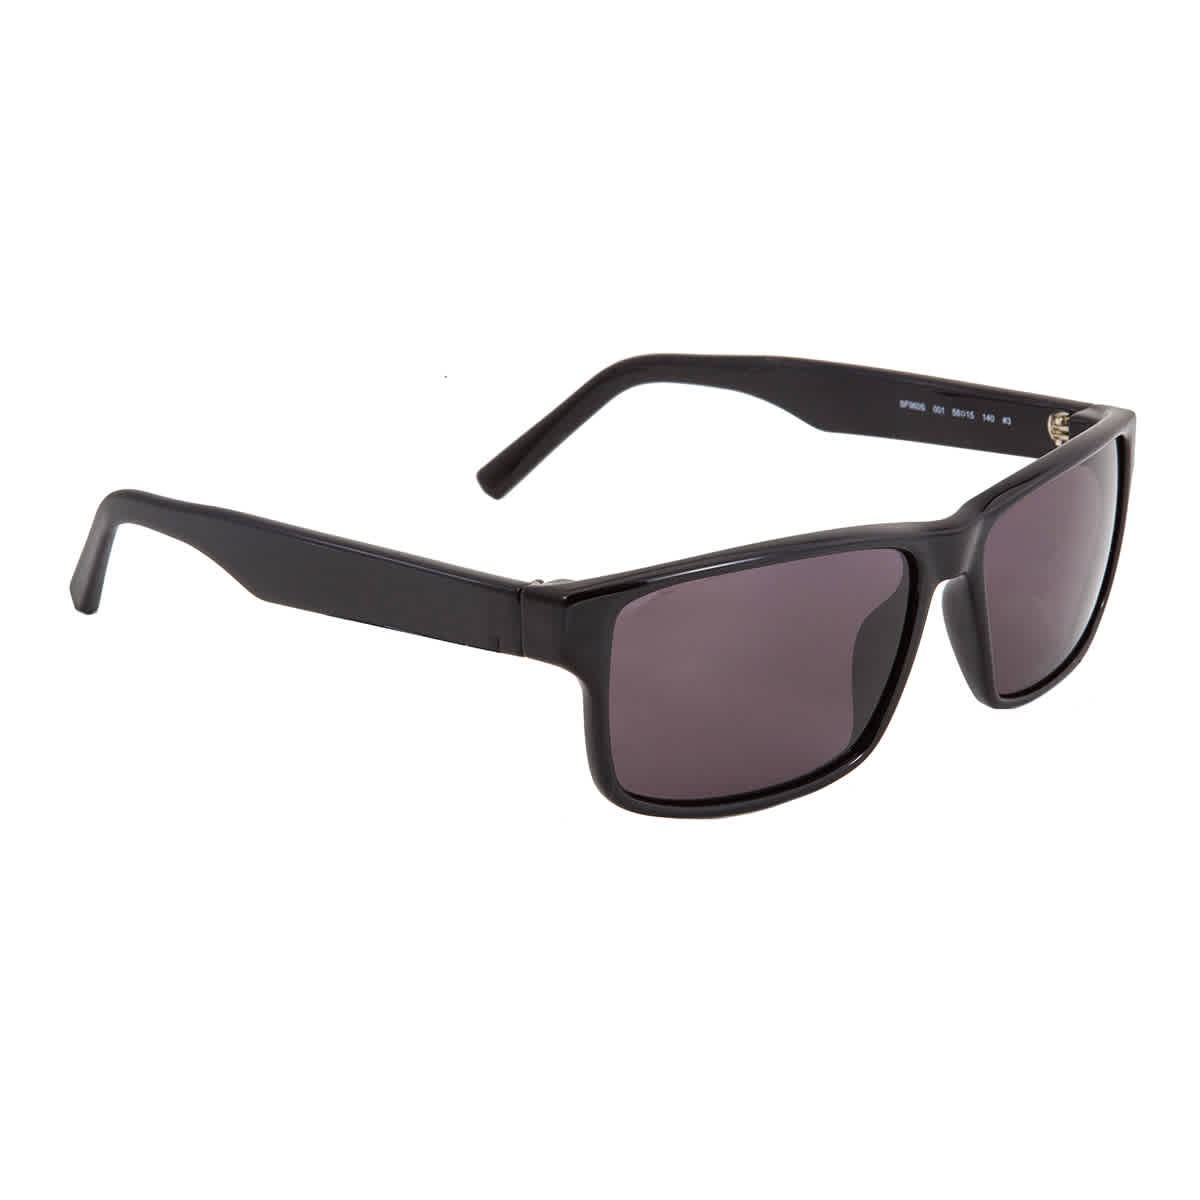 Salvatore Ferragamo Grey Rectangular 58 Mm Mens Sunglasses Sf960s 001 58 In Black